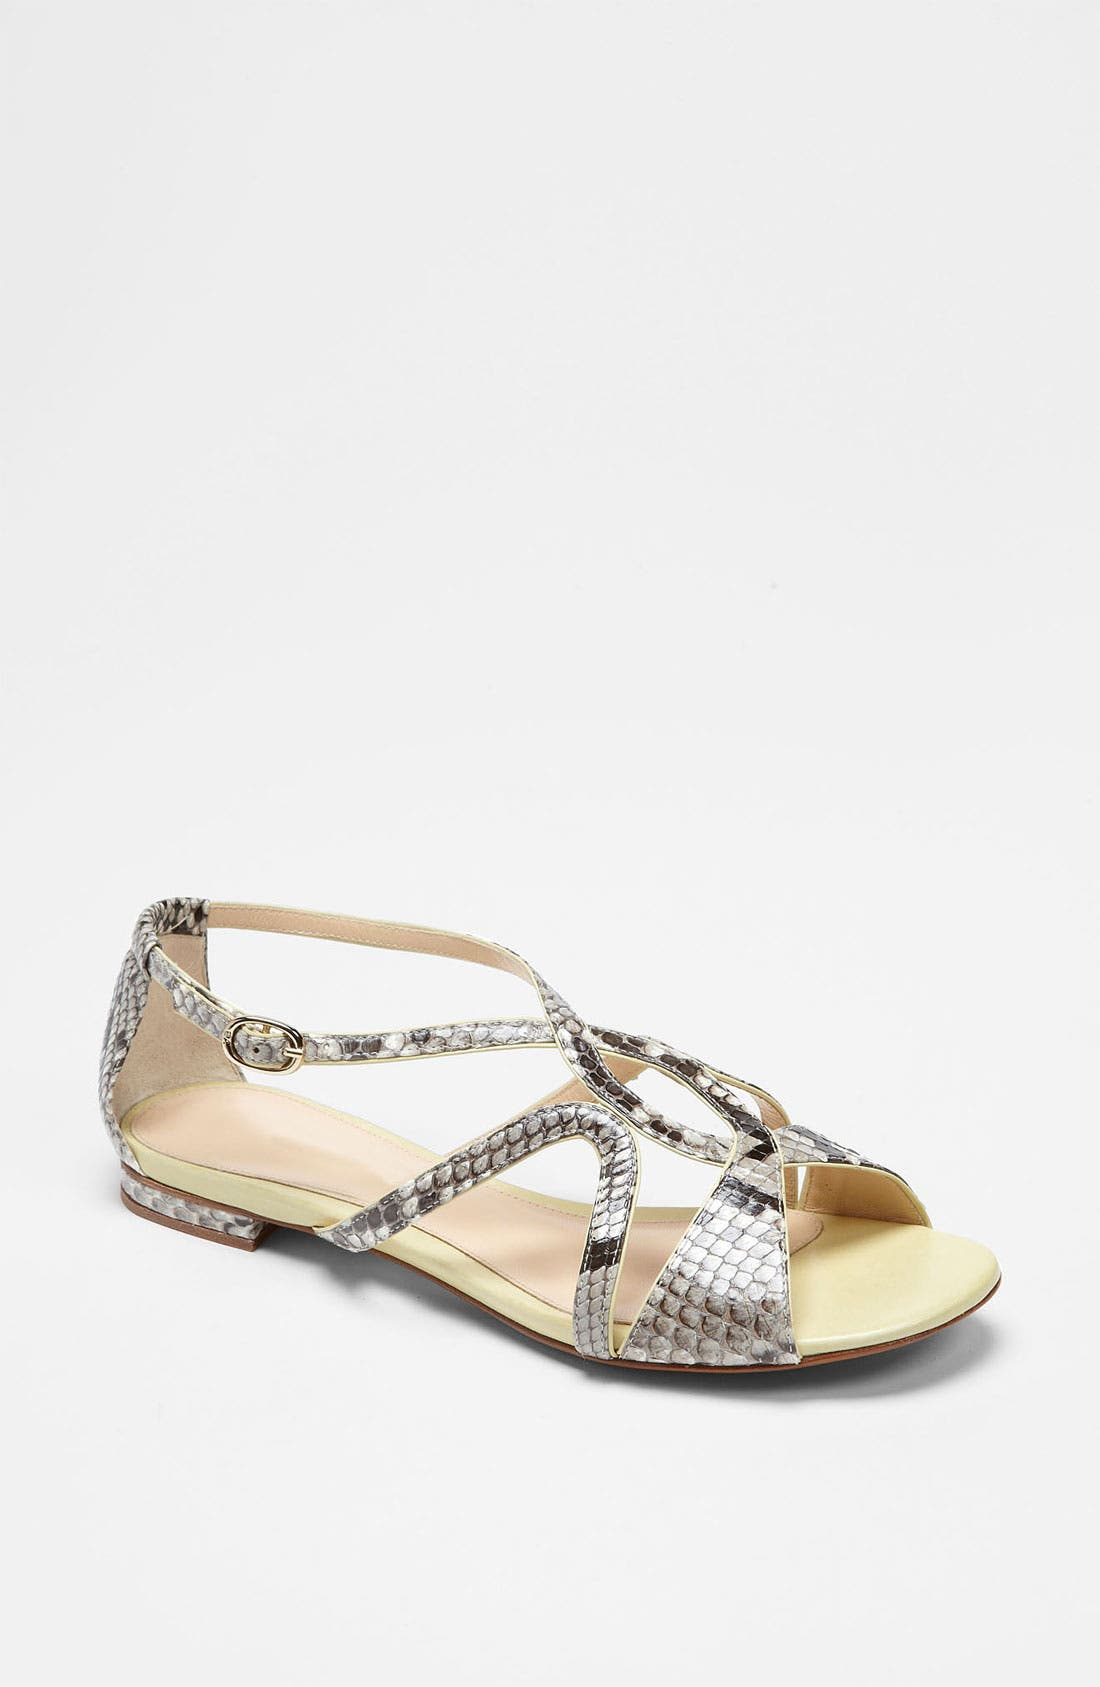 Alternate Image 1 Selected - Alexandre Birman Flat Sandal